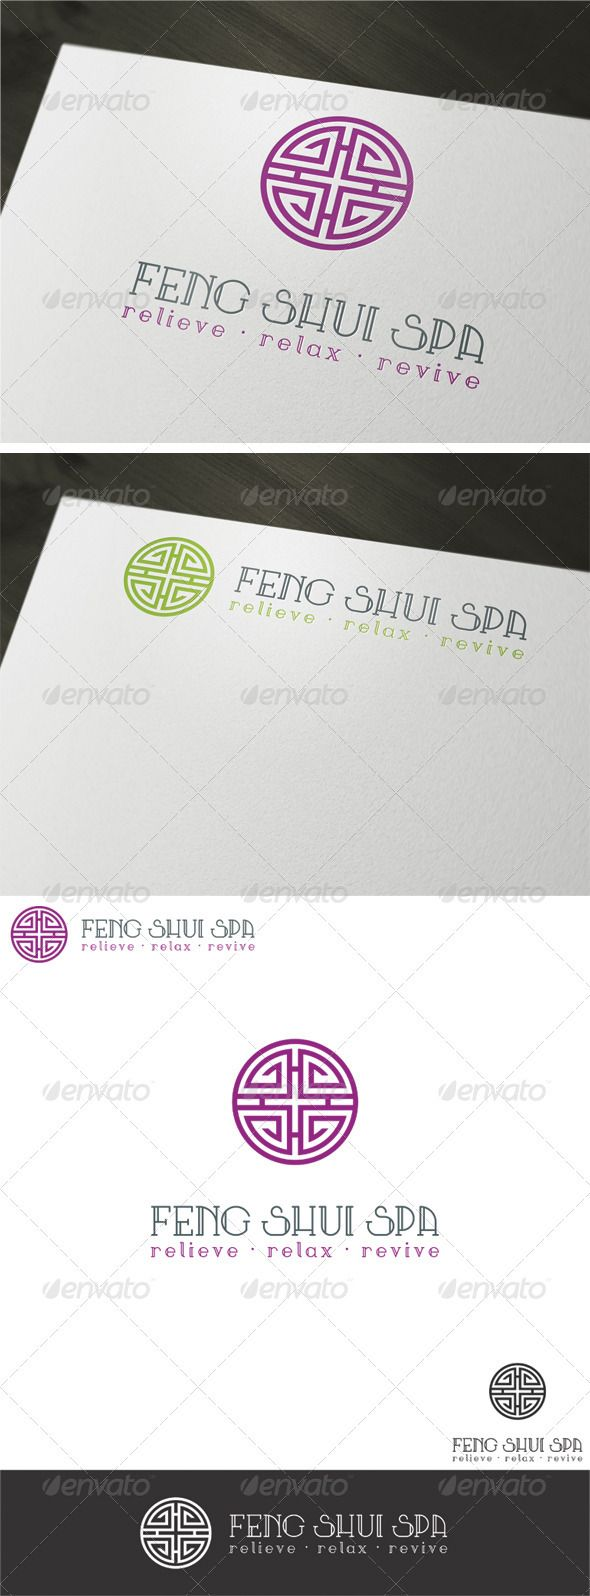 64 best logo templates images on pinterest logo templates font feng shui spa logo template colourmoves